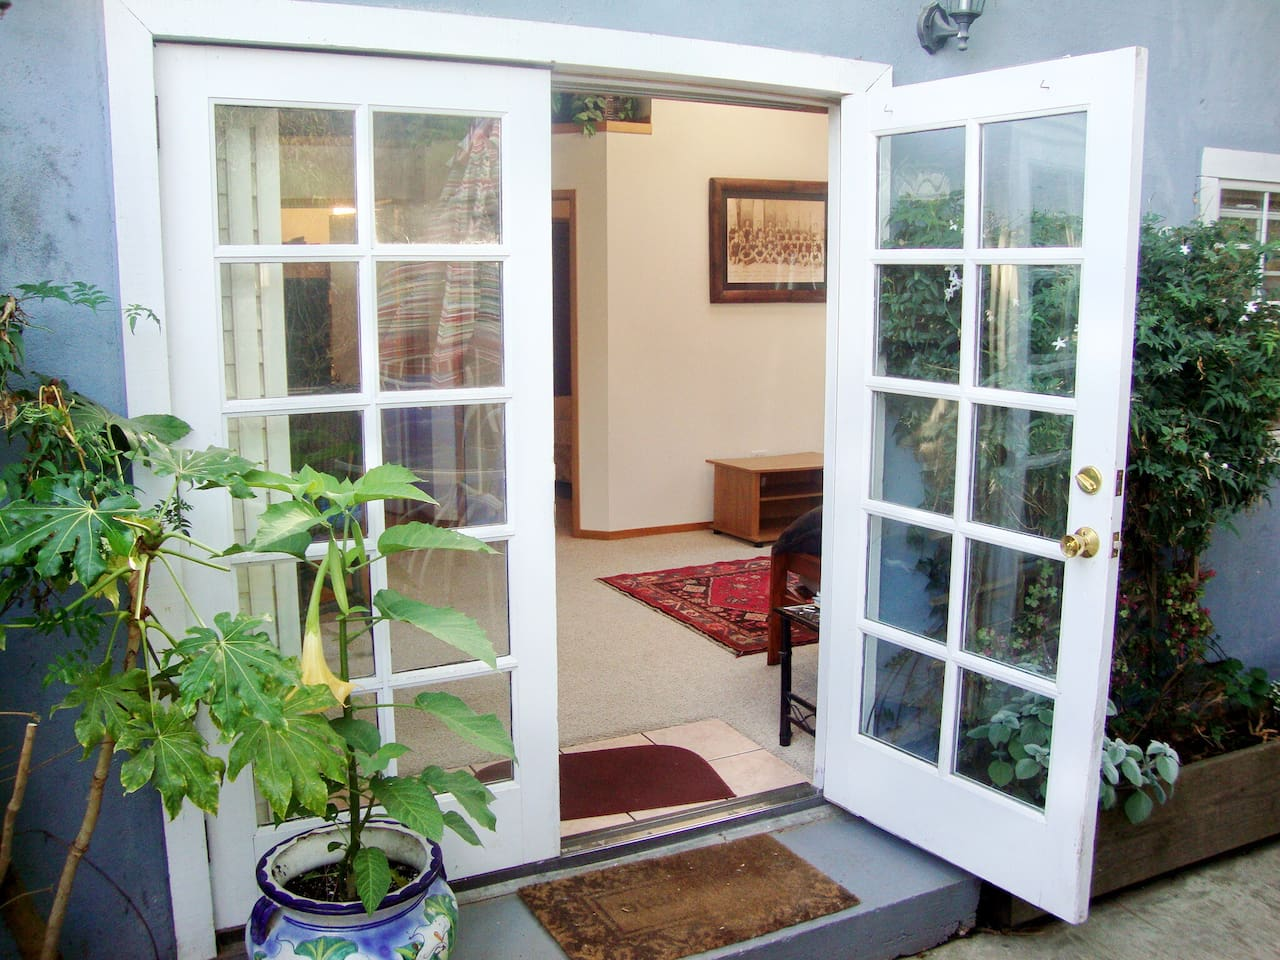 Open the french doors and let the outside sea breeze in!